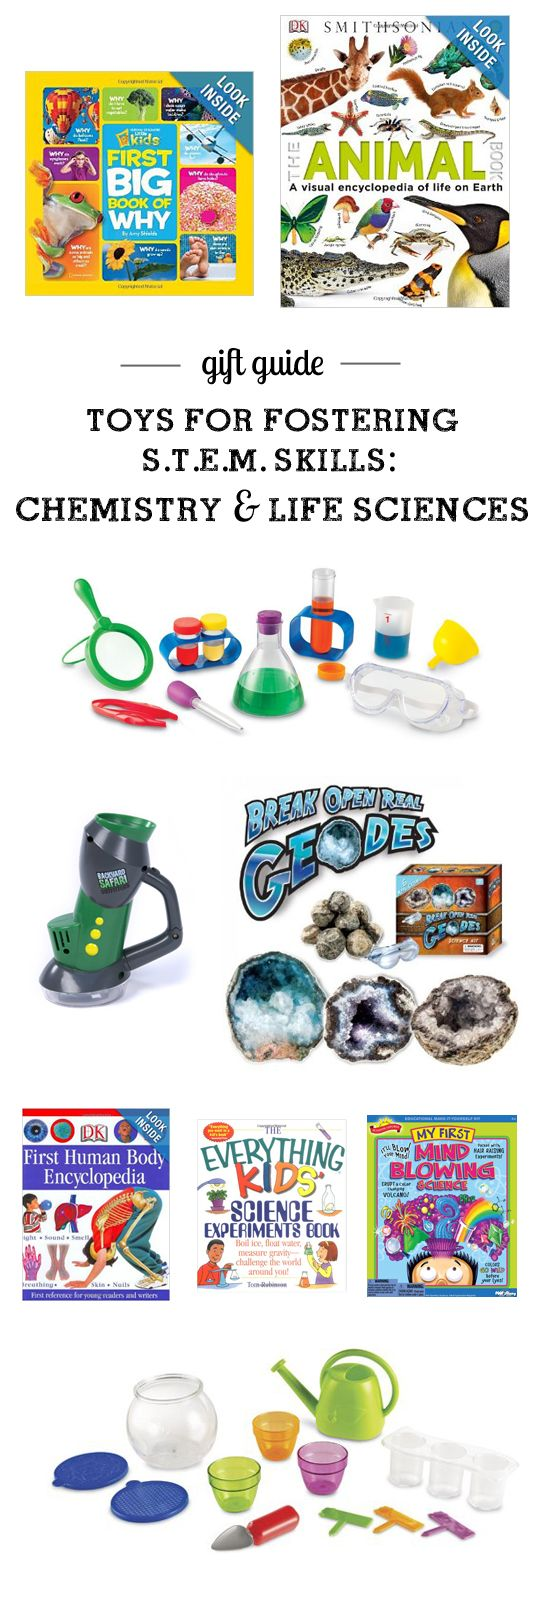 This is just one section from a great S.T.E.M. (Science, Technology, Engineering, Math) gift guide